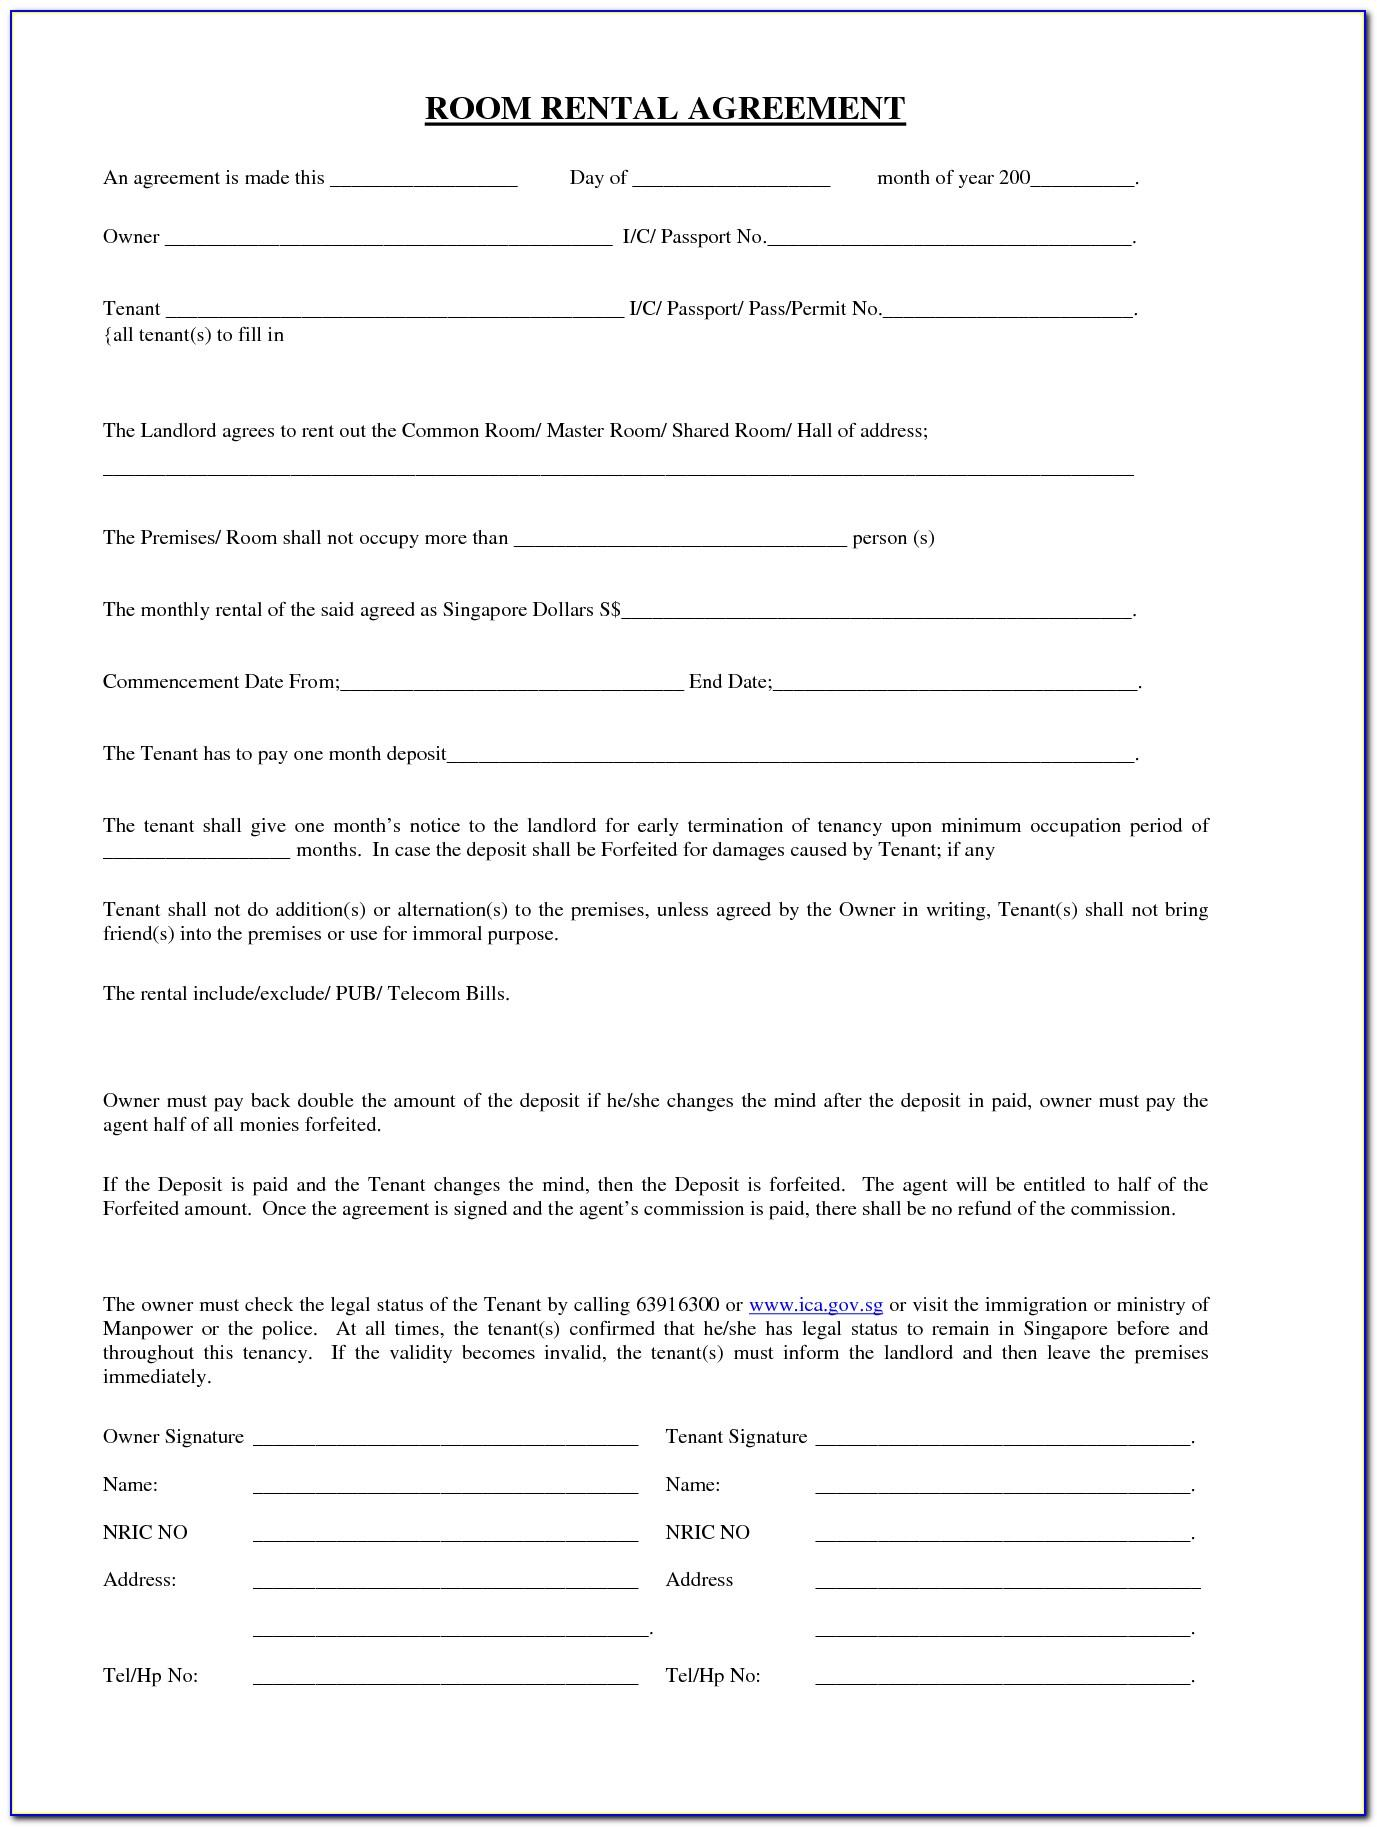 Free Sample Letter Asking For Donations For A Family In Need